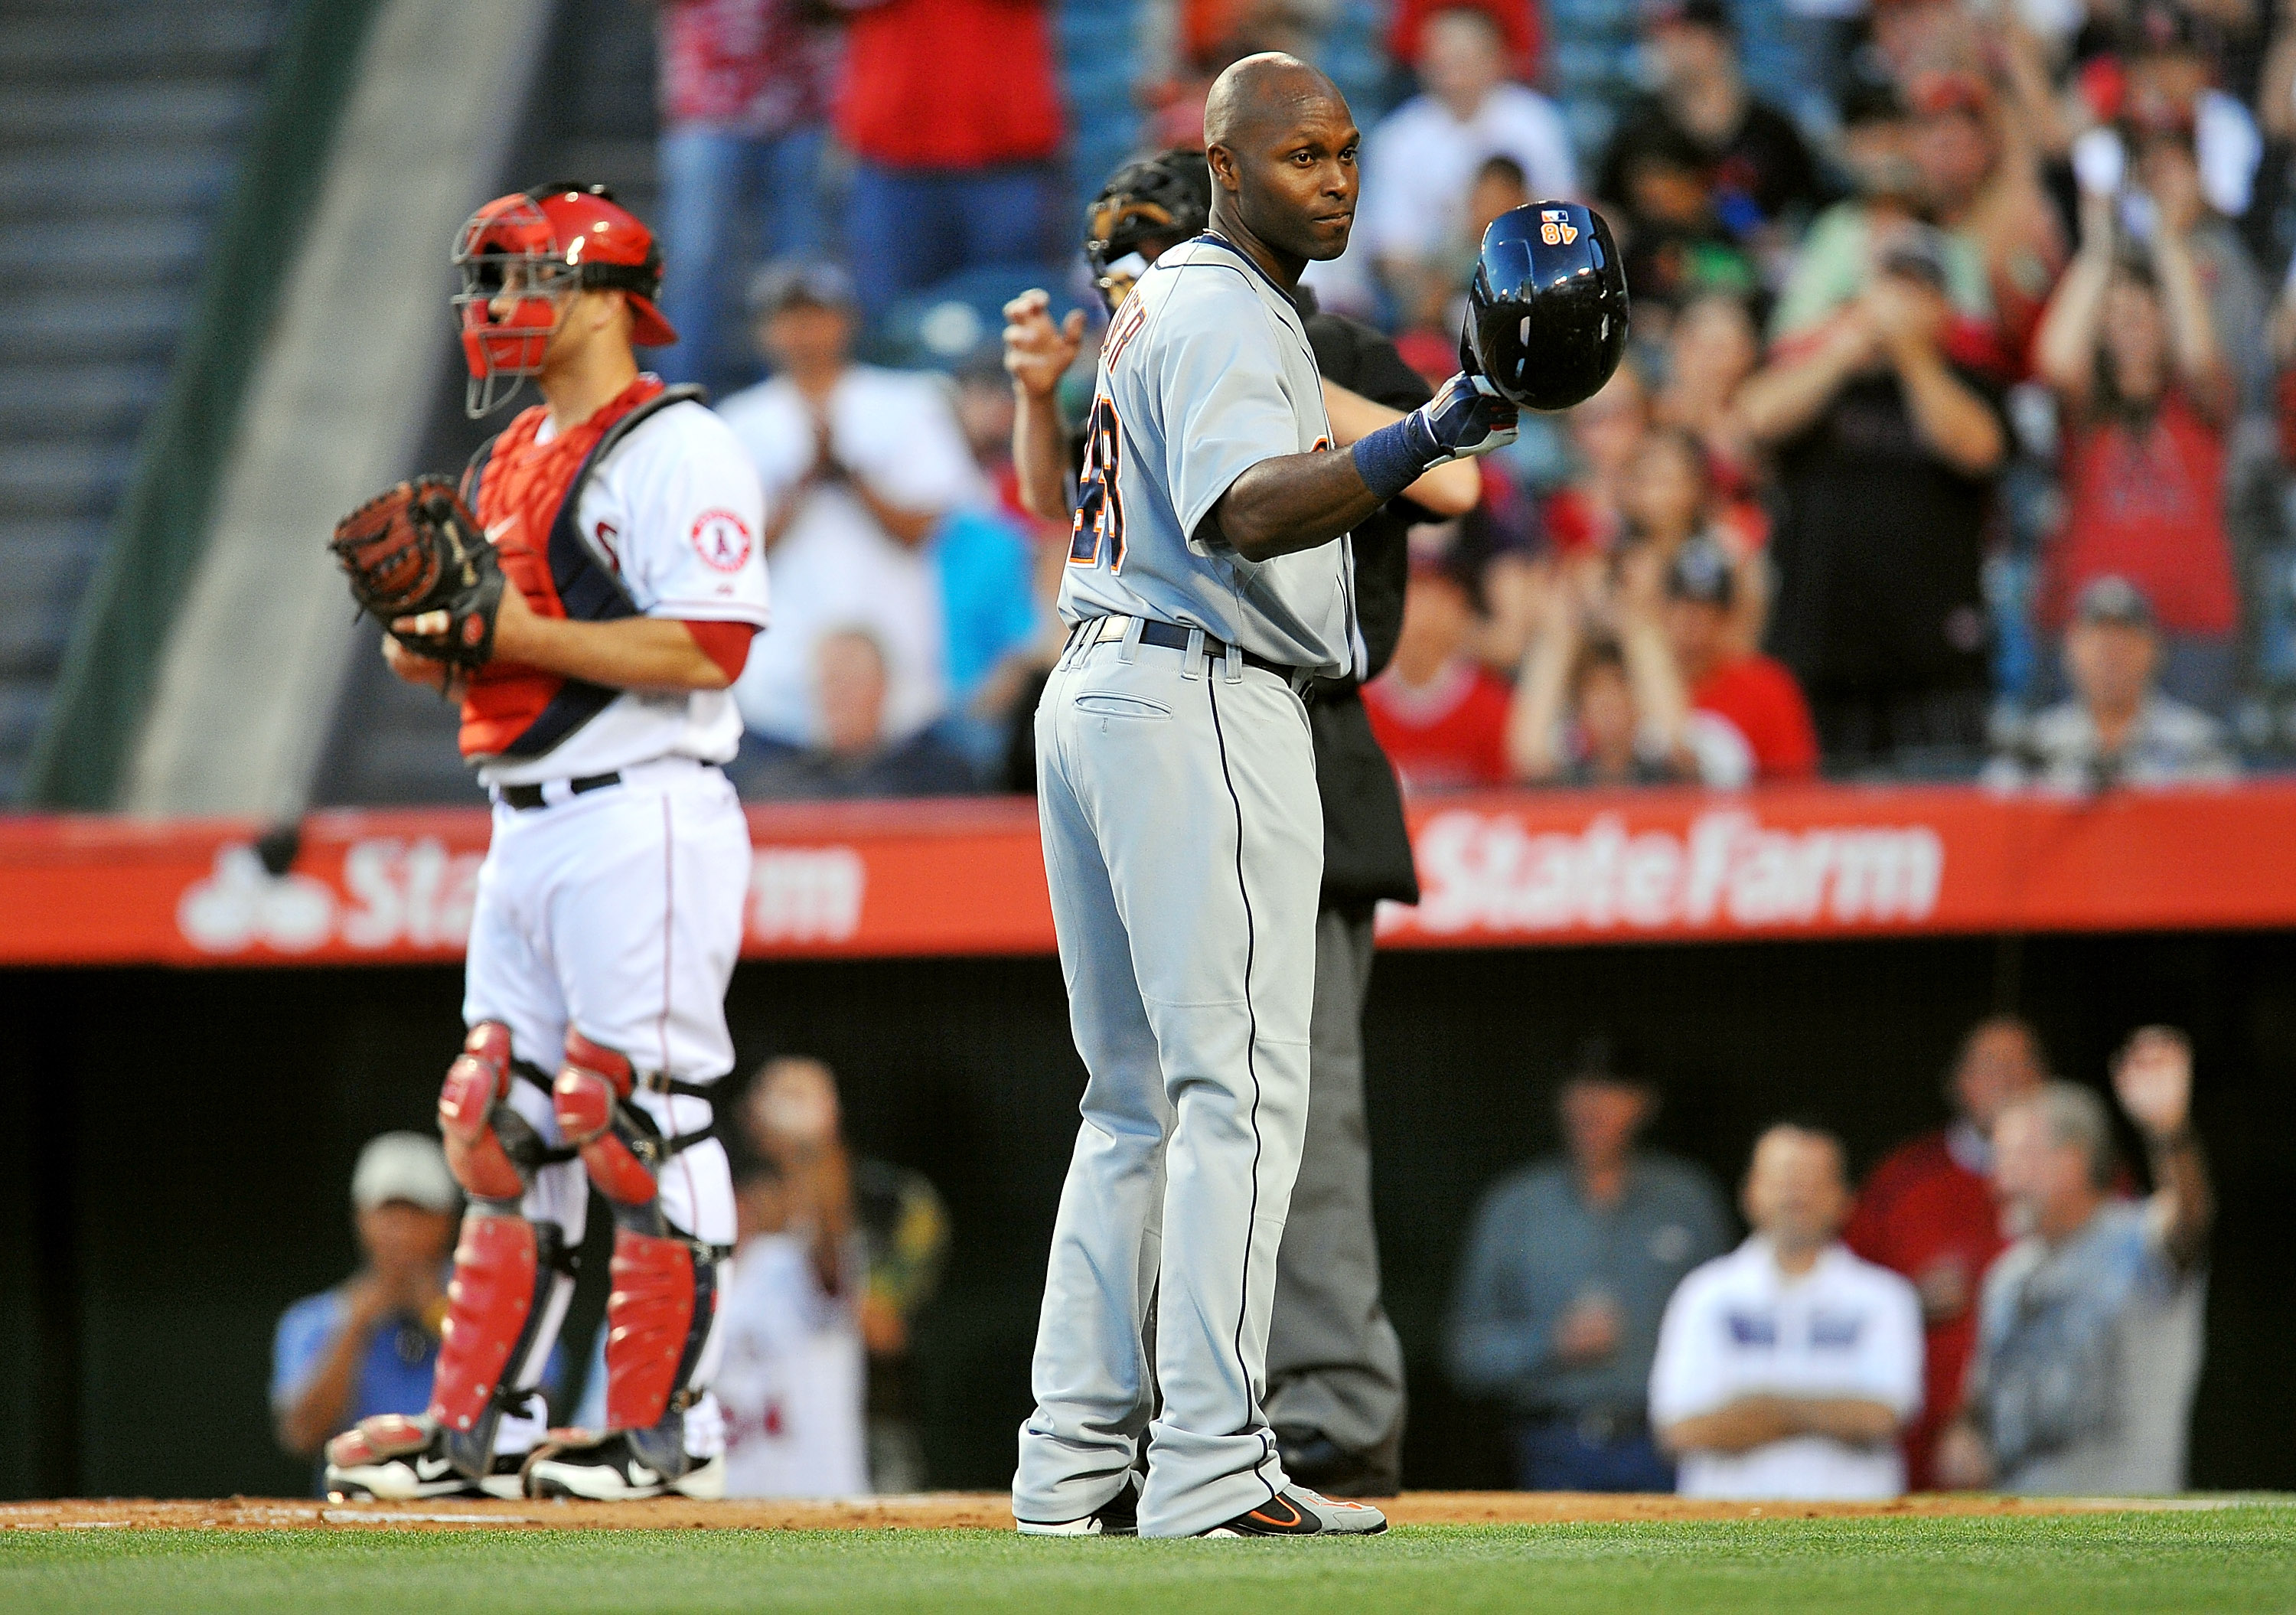 Torii Hunter acknowledges the Angels bench before his first at-bat. (USA TODAY Sports)